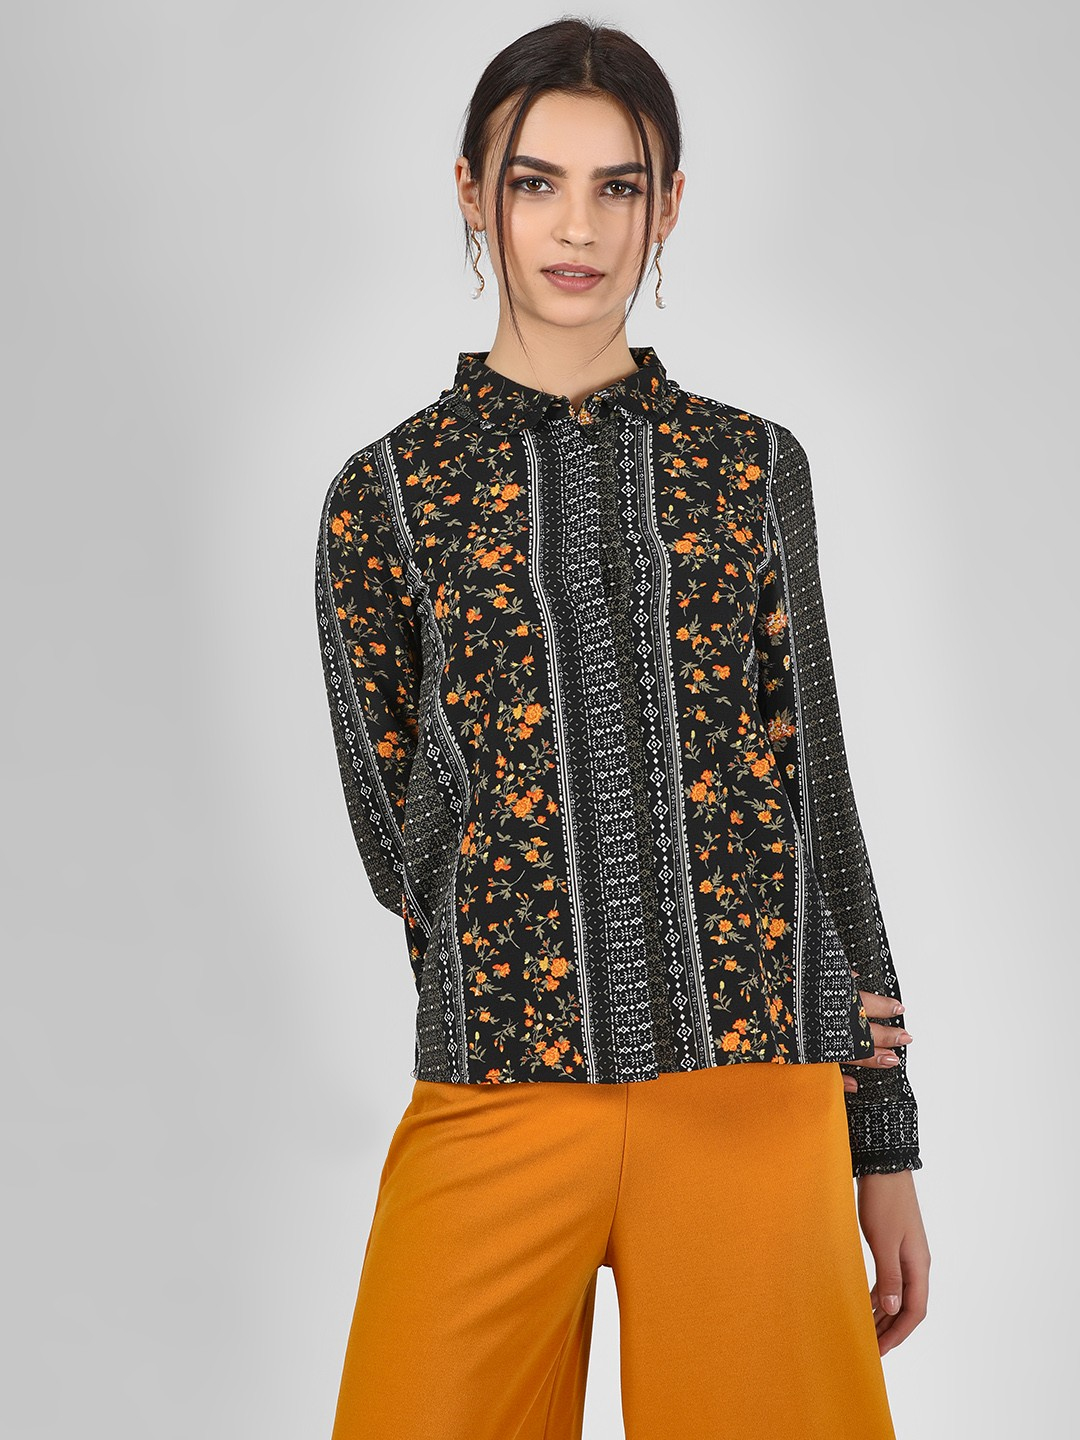 Vero Moda Black Floral Printed Long Sleeve Shirt 1